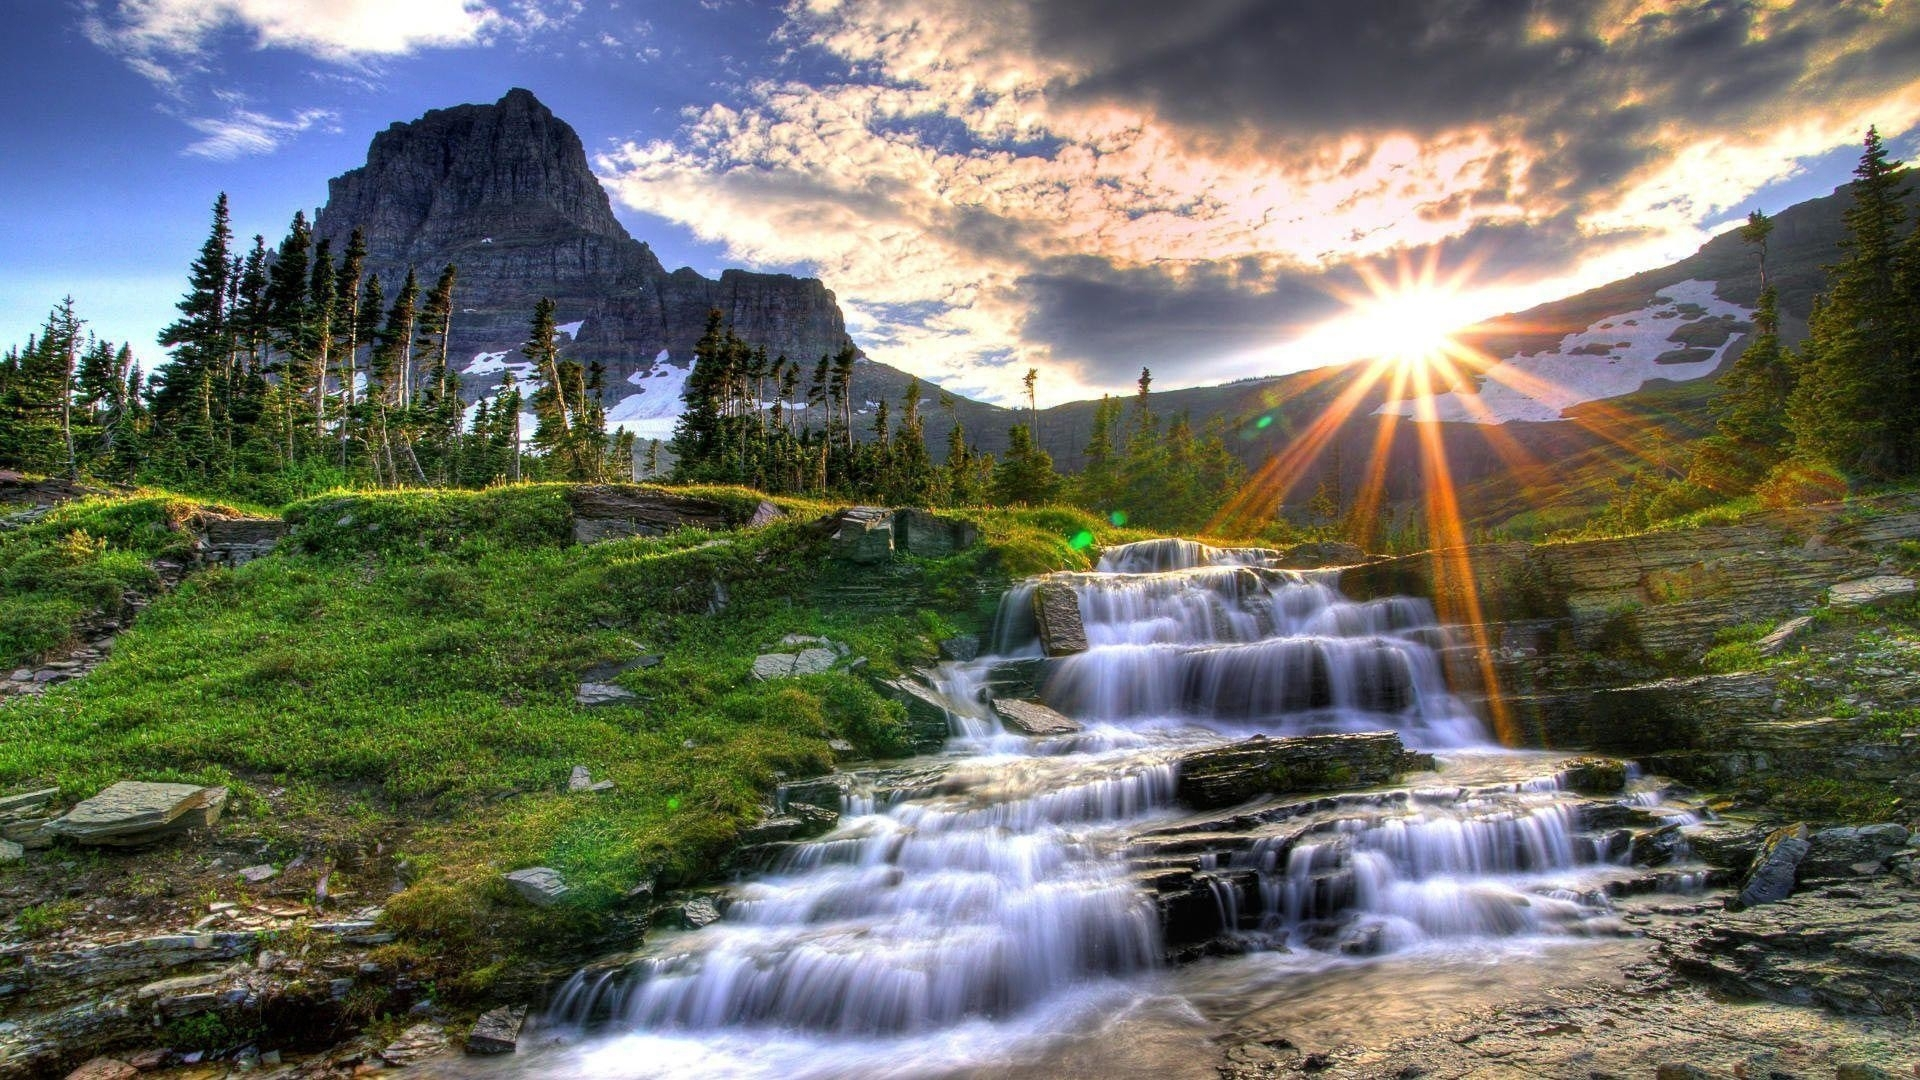 best nature hd wallpapers (64+ images)